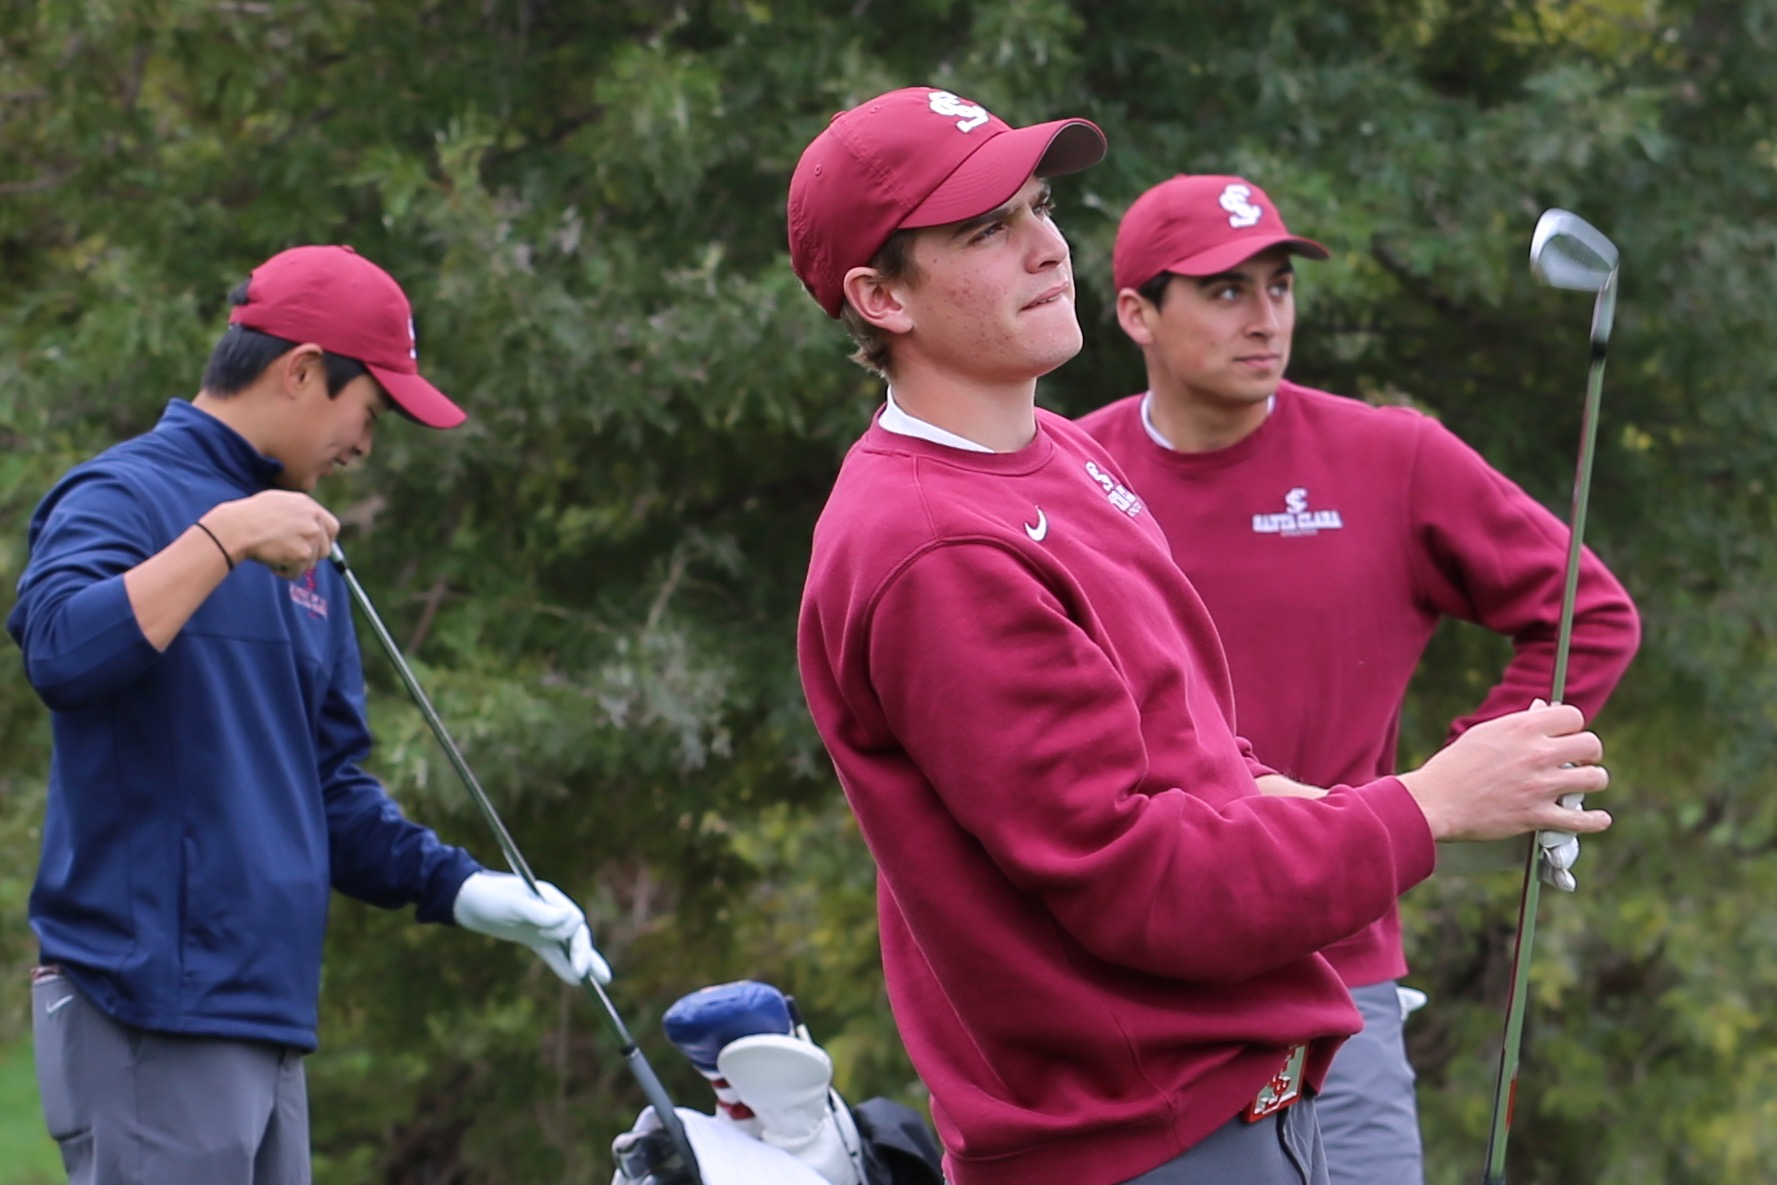 Men's Golf Moves Into Tie For 11th After 36 Holes Of Wyoming Desert Intercollegiate